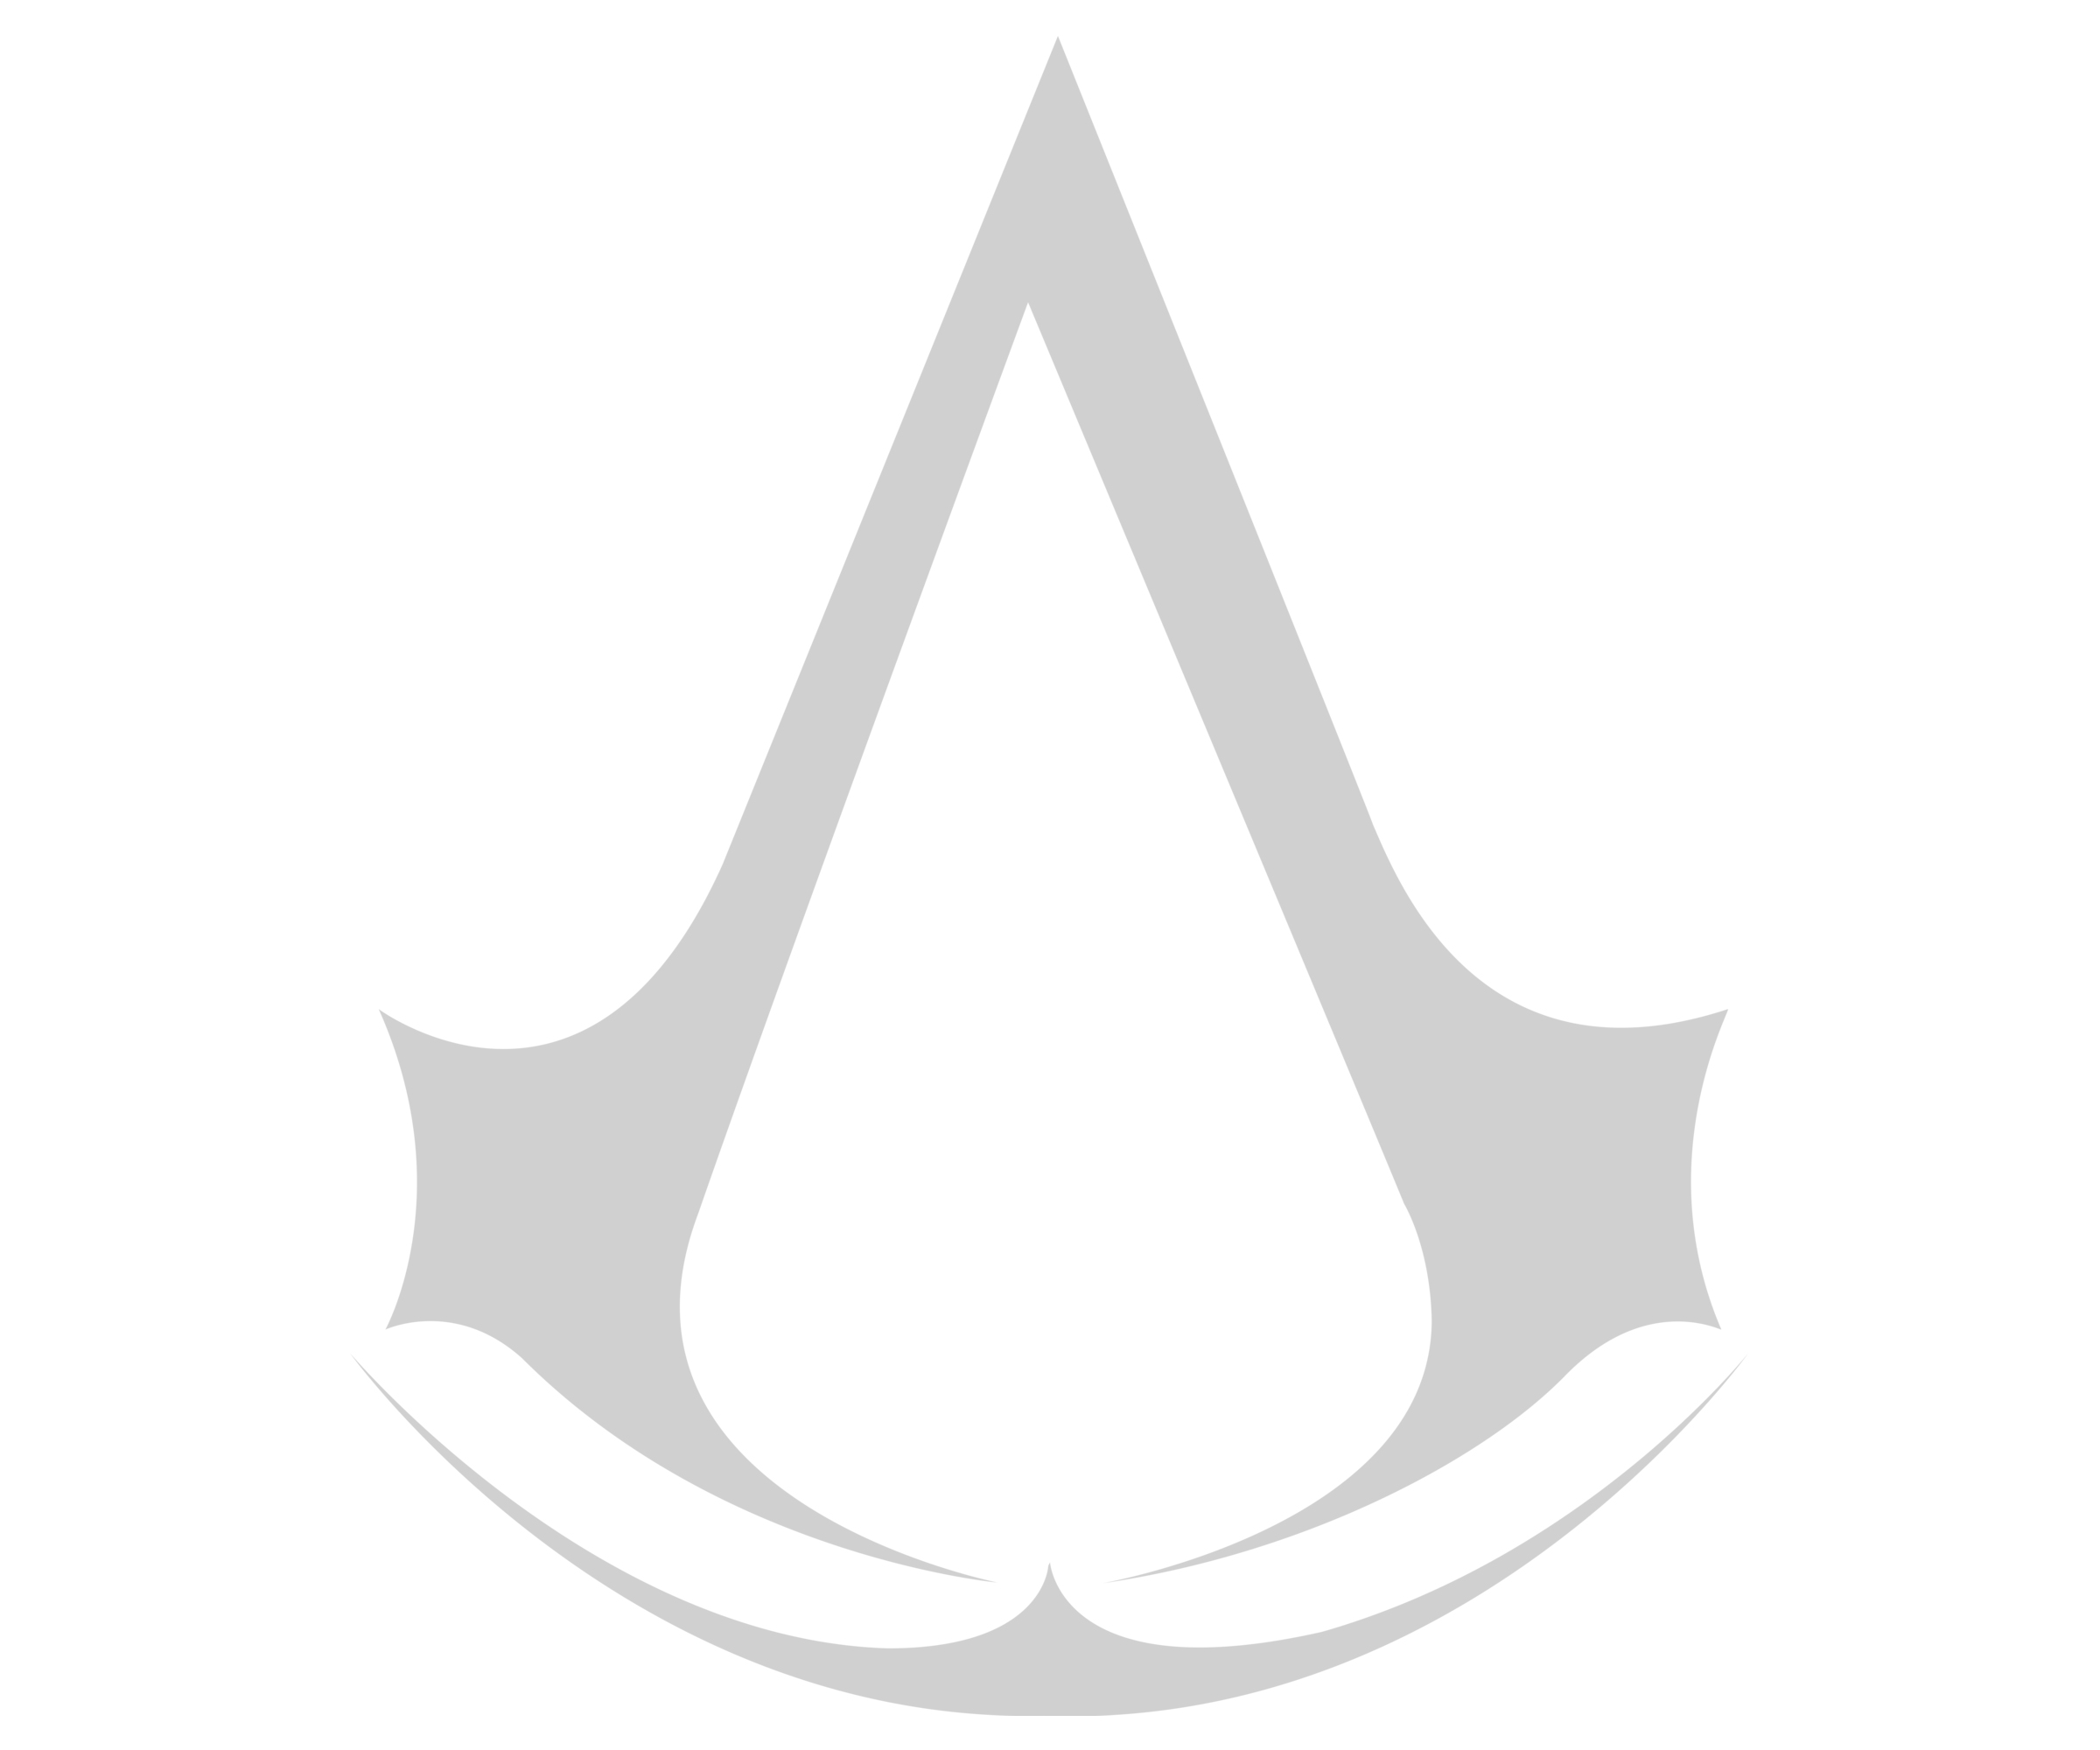 Meaning Assassins Creed logo and symbol.